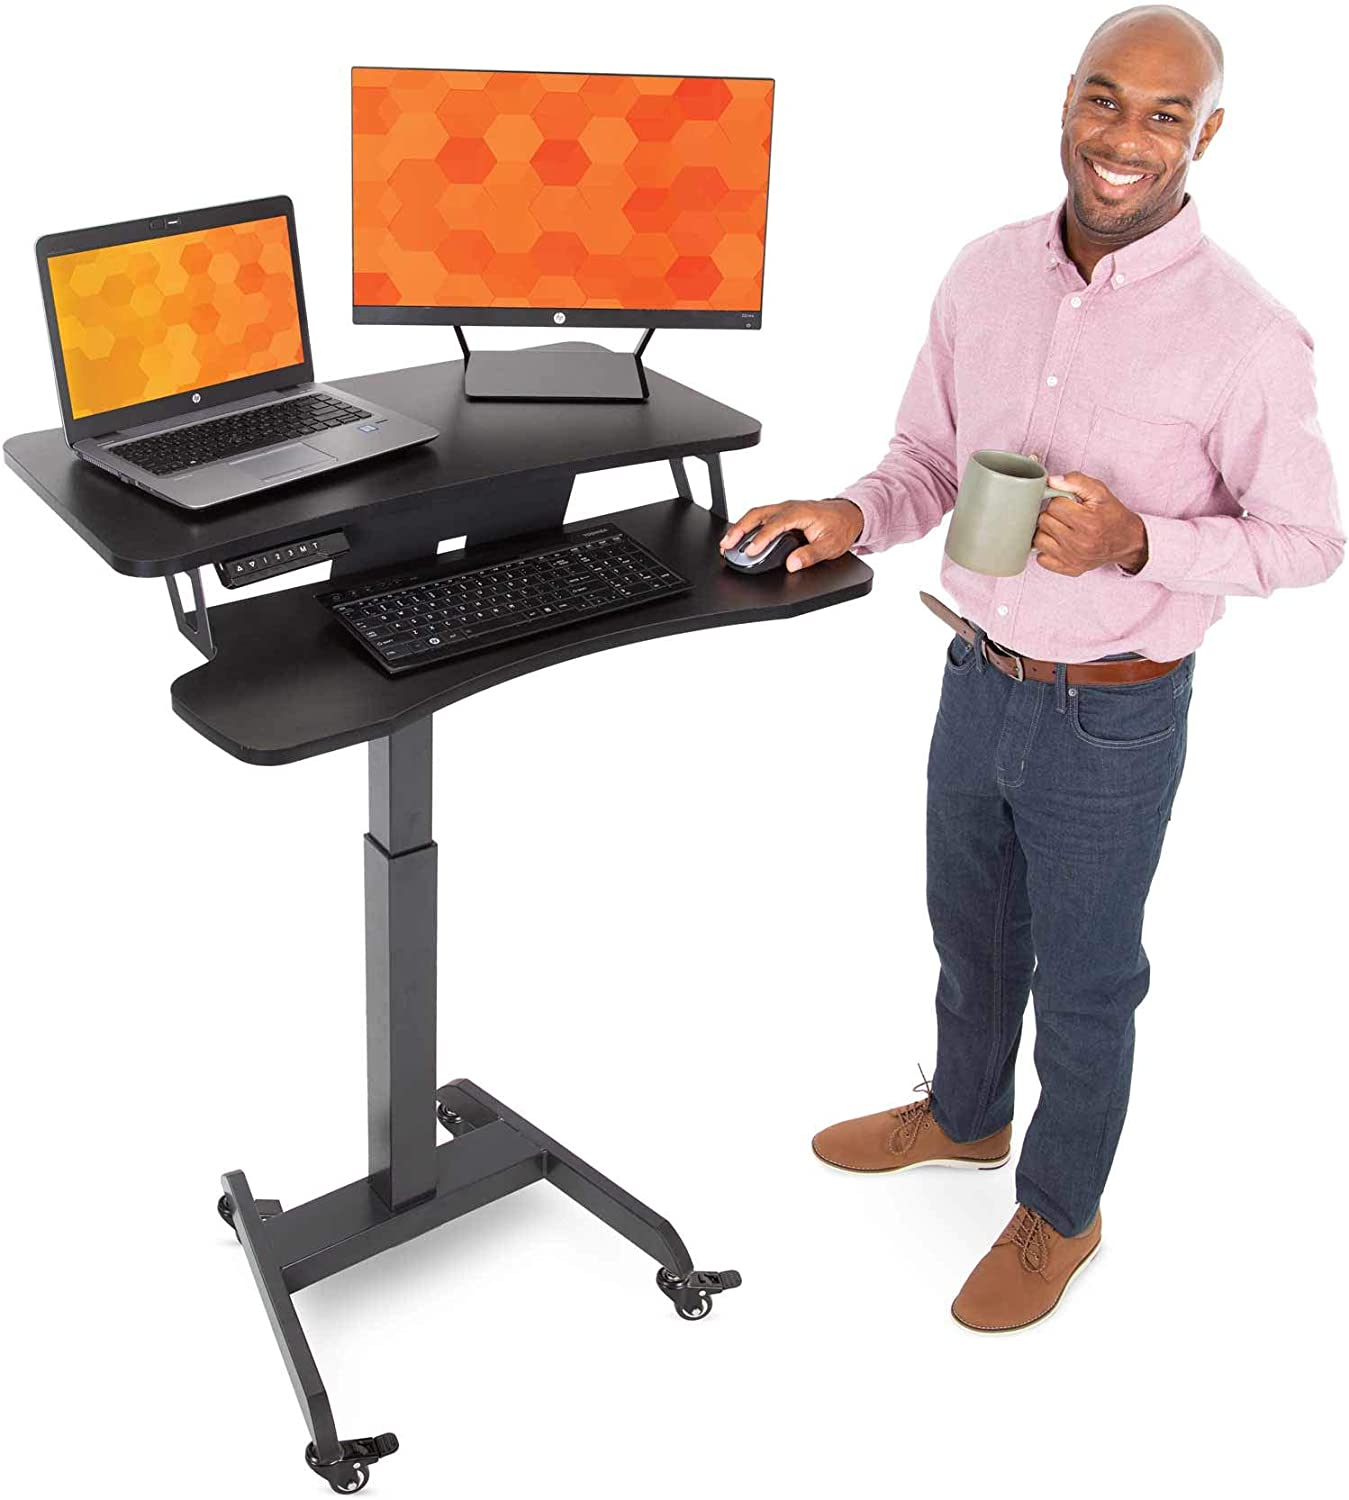 Stand Steady Electric Mobile Podium w/Keyboard Tray – Height Adjustable Stand Up Workstation w/Locking Wheels – Smoothly and Easily Go from Sitting to Standing w/Programmable Control Pad (32 x 25)